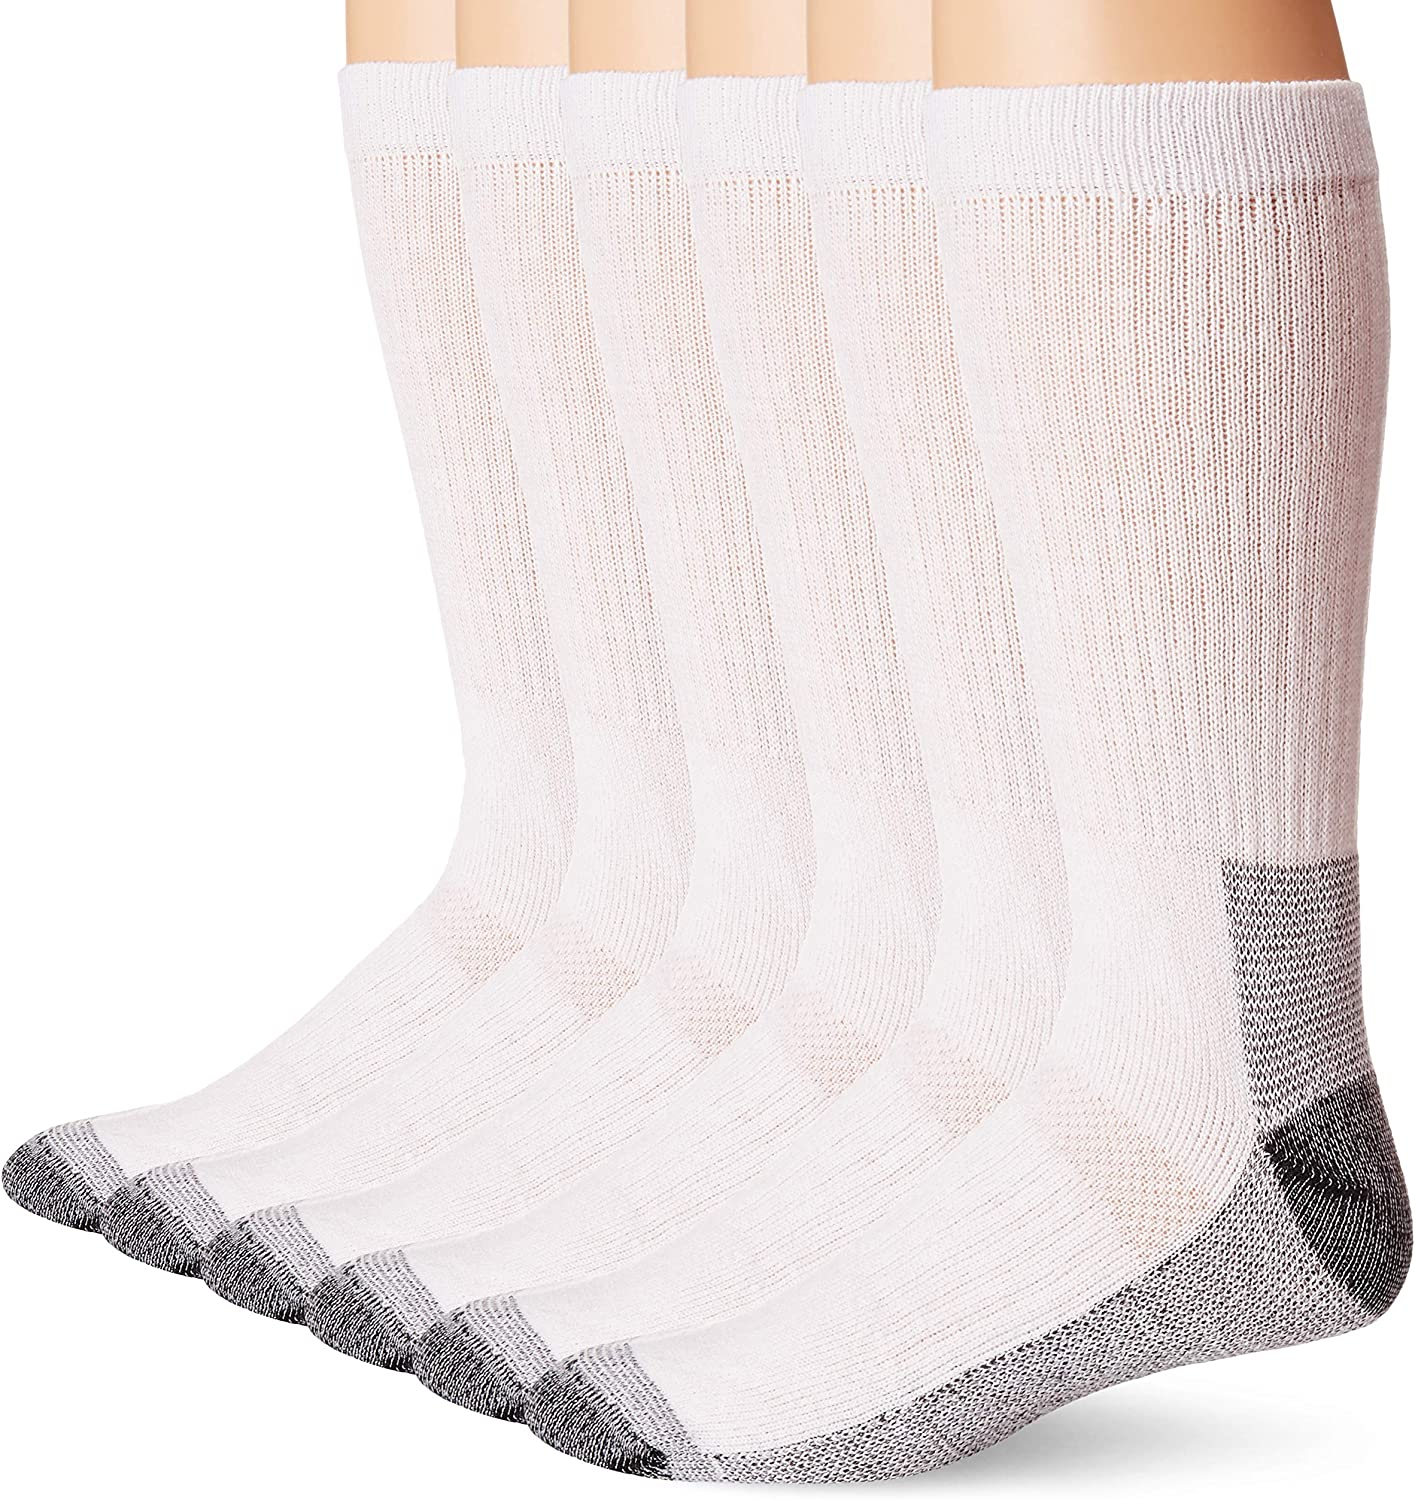 Fruit of the Loom mens Cushioned Durable Cotton Work Gear Socks With Moisture Wicking